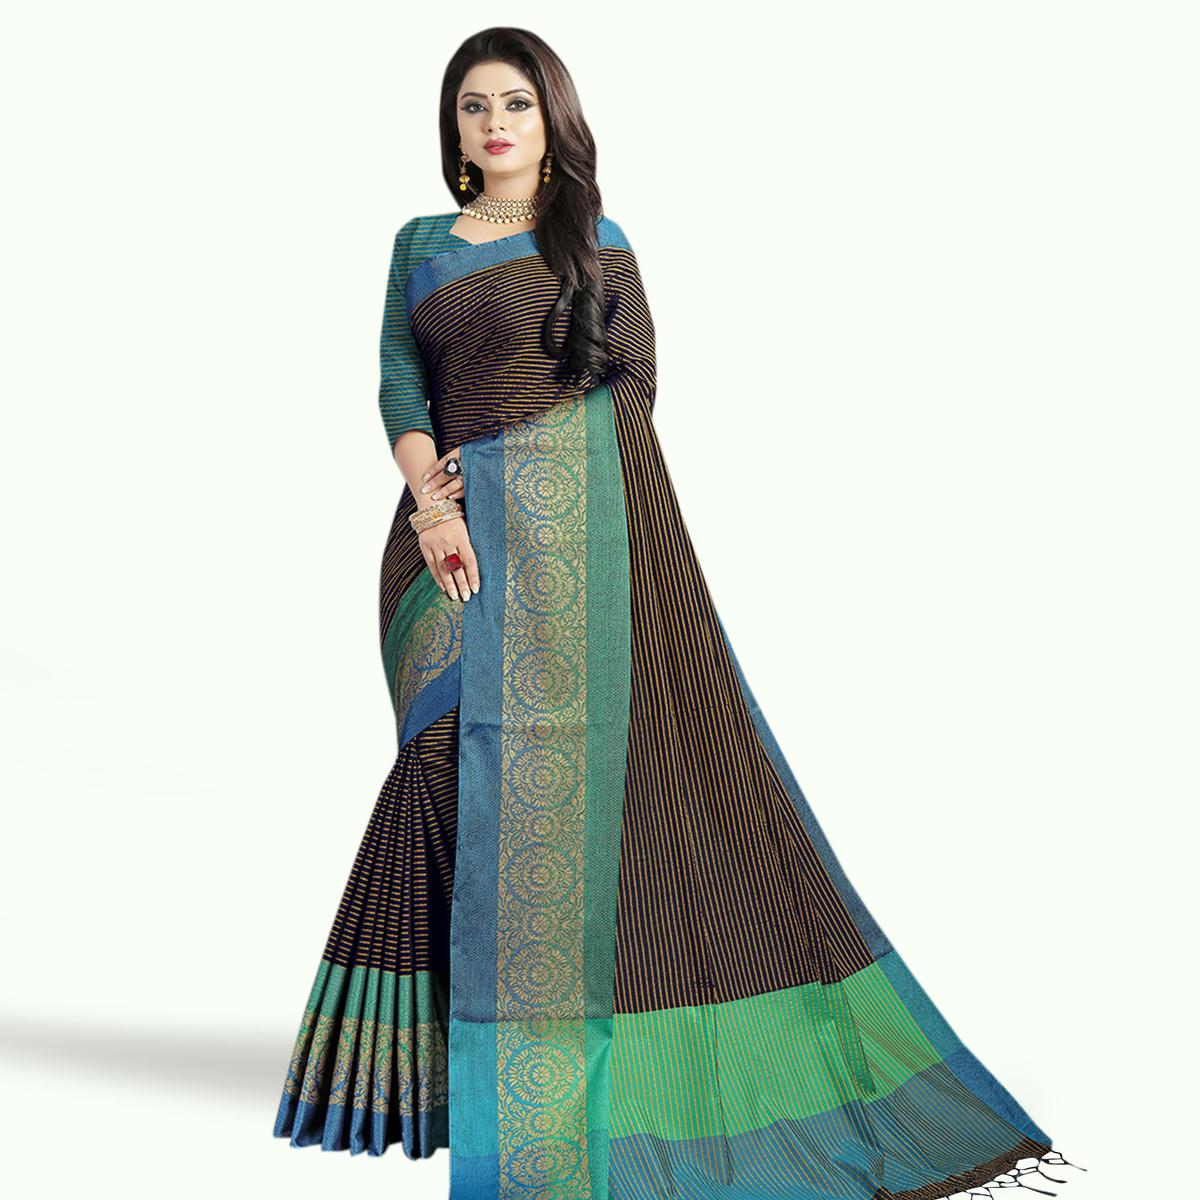 Pleasance Black Colored Festive Wear Chanderi Silk Saree